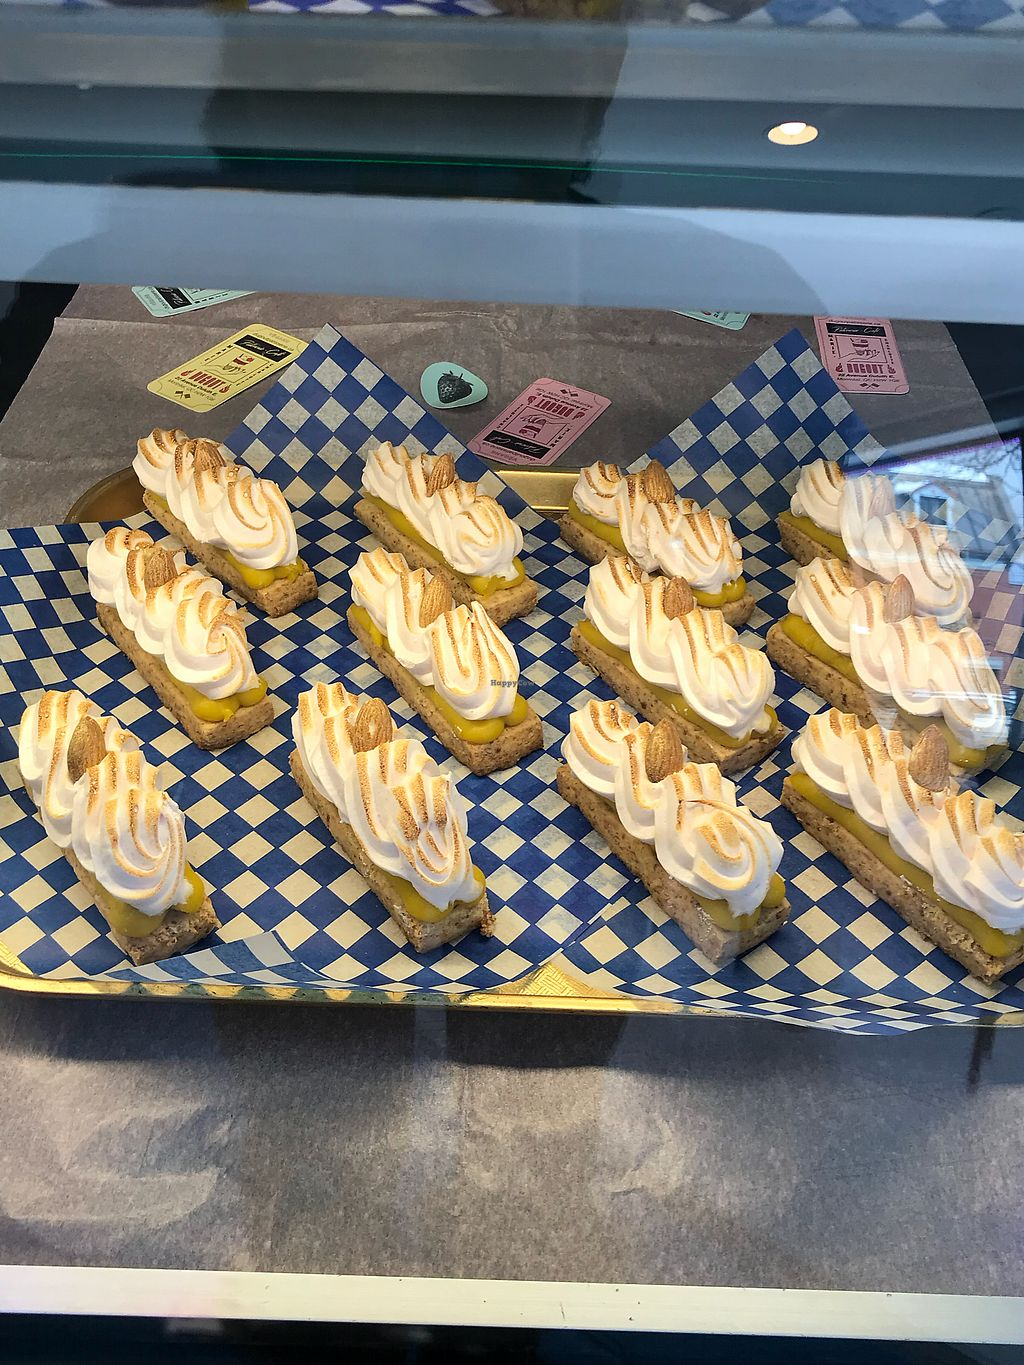 """Photo of Dugout  by <a href=""""/members/profile/prettywholesome"""">prettywholesome</a> <br/>I can eat the whole tray! <br/> February 20, 2018  - <a href='/contact/abuse/image/110205/361738'>Report</a>"""